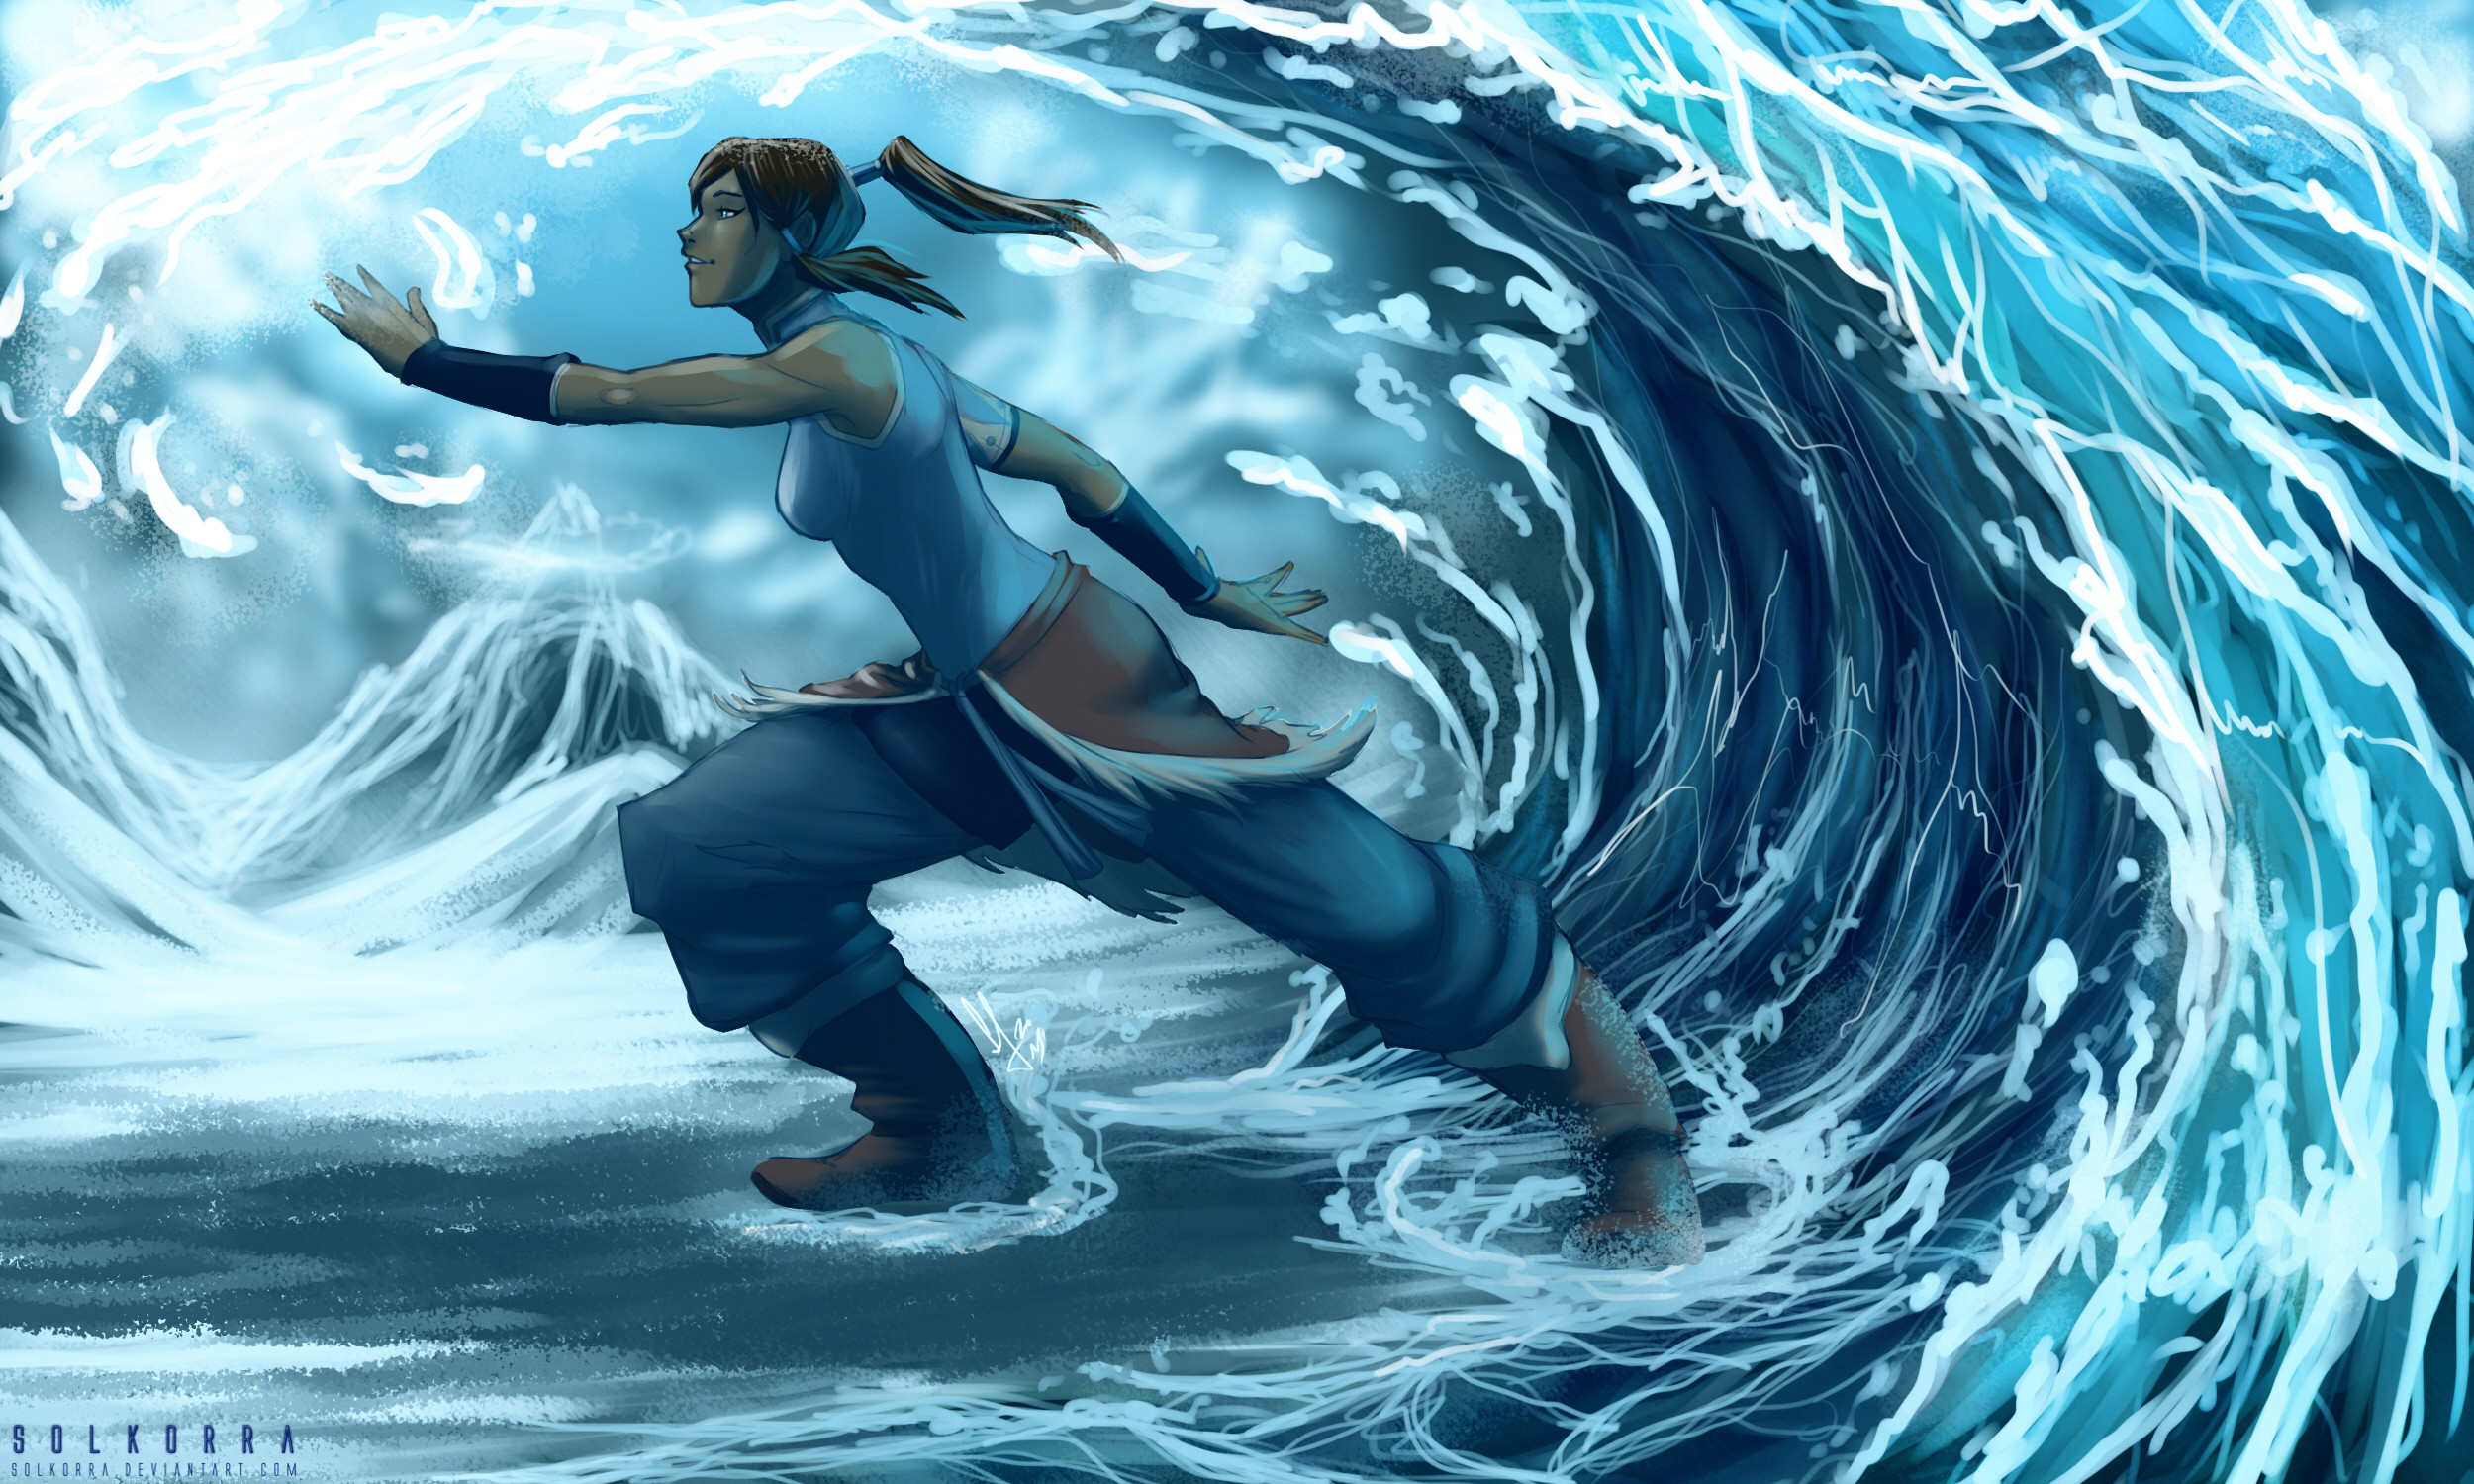 2500x1500 Anime - Avatar: The Legend Of Korra Wallpaper